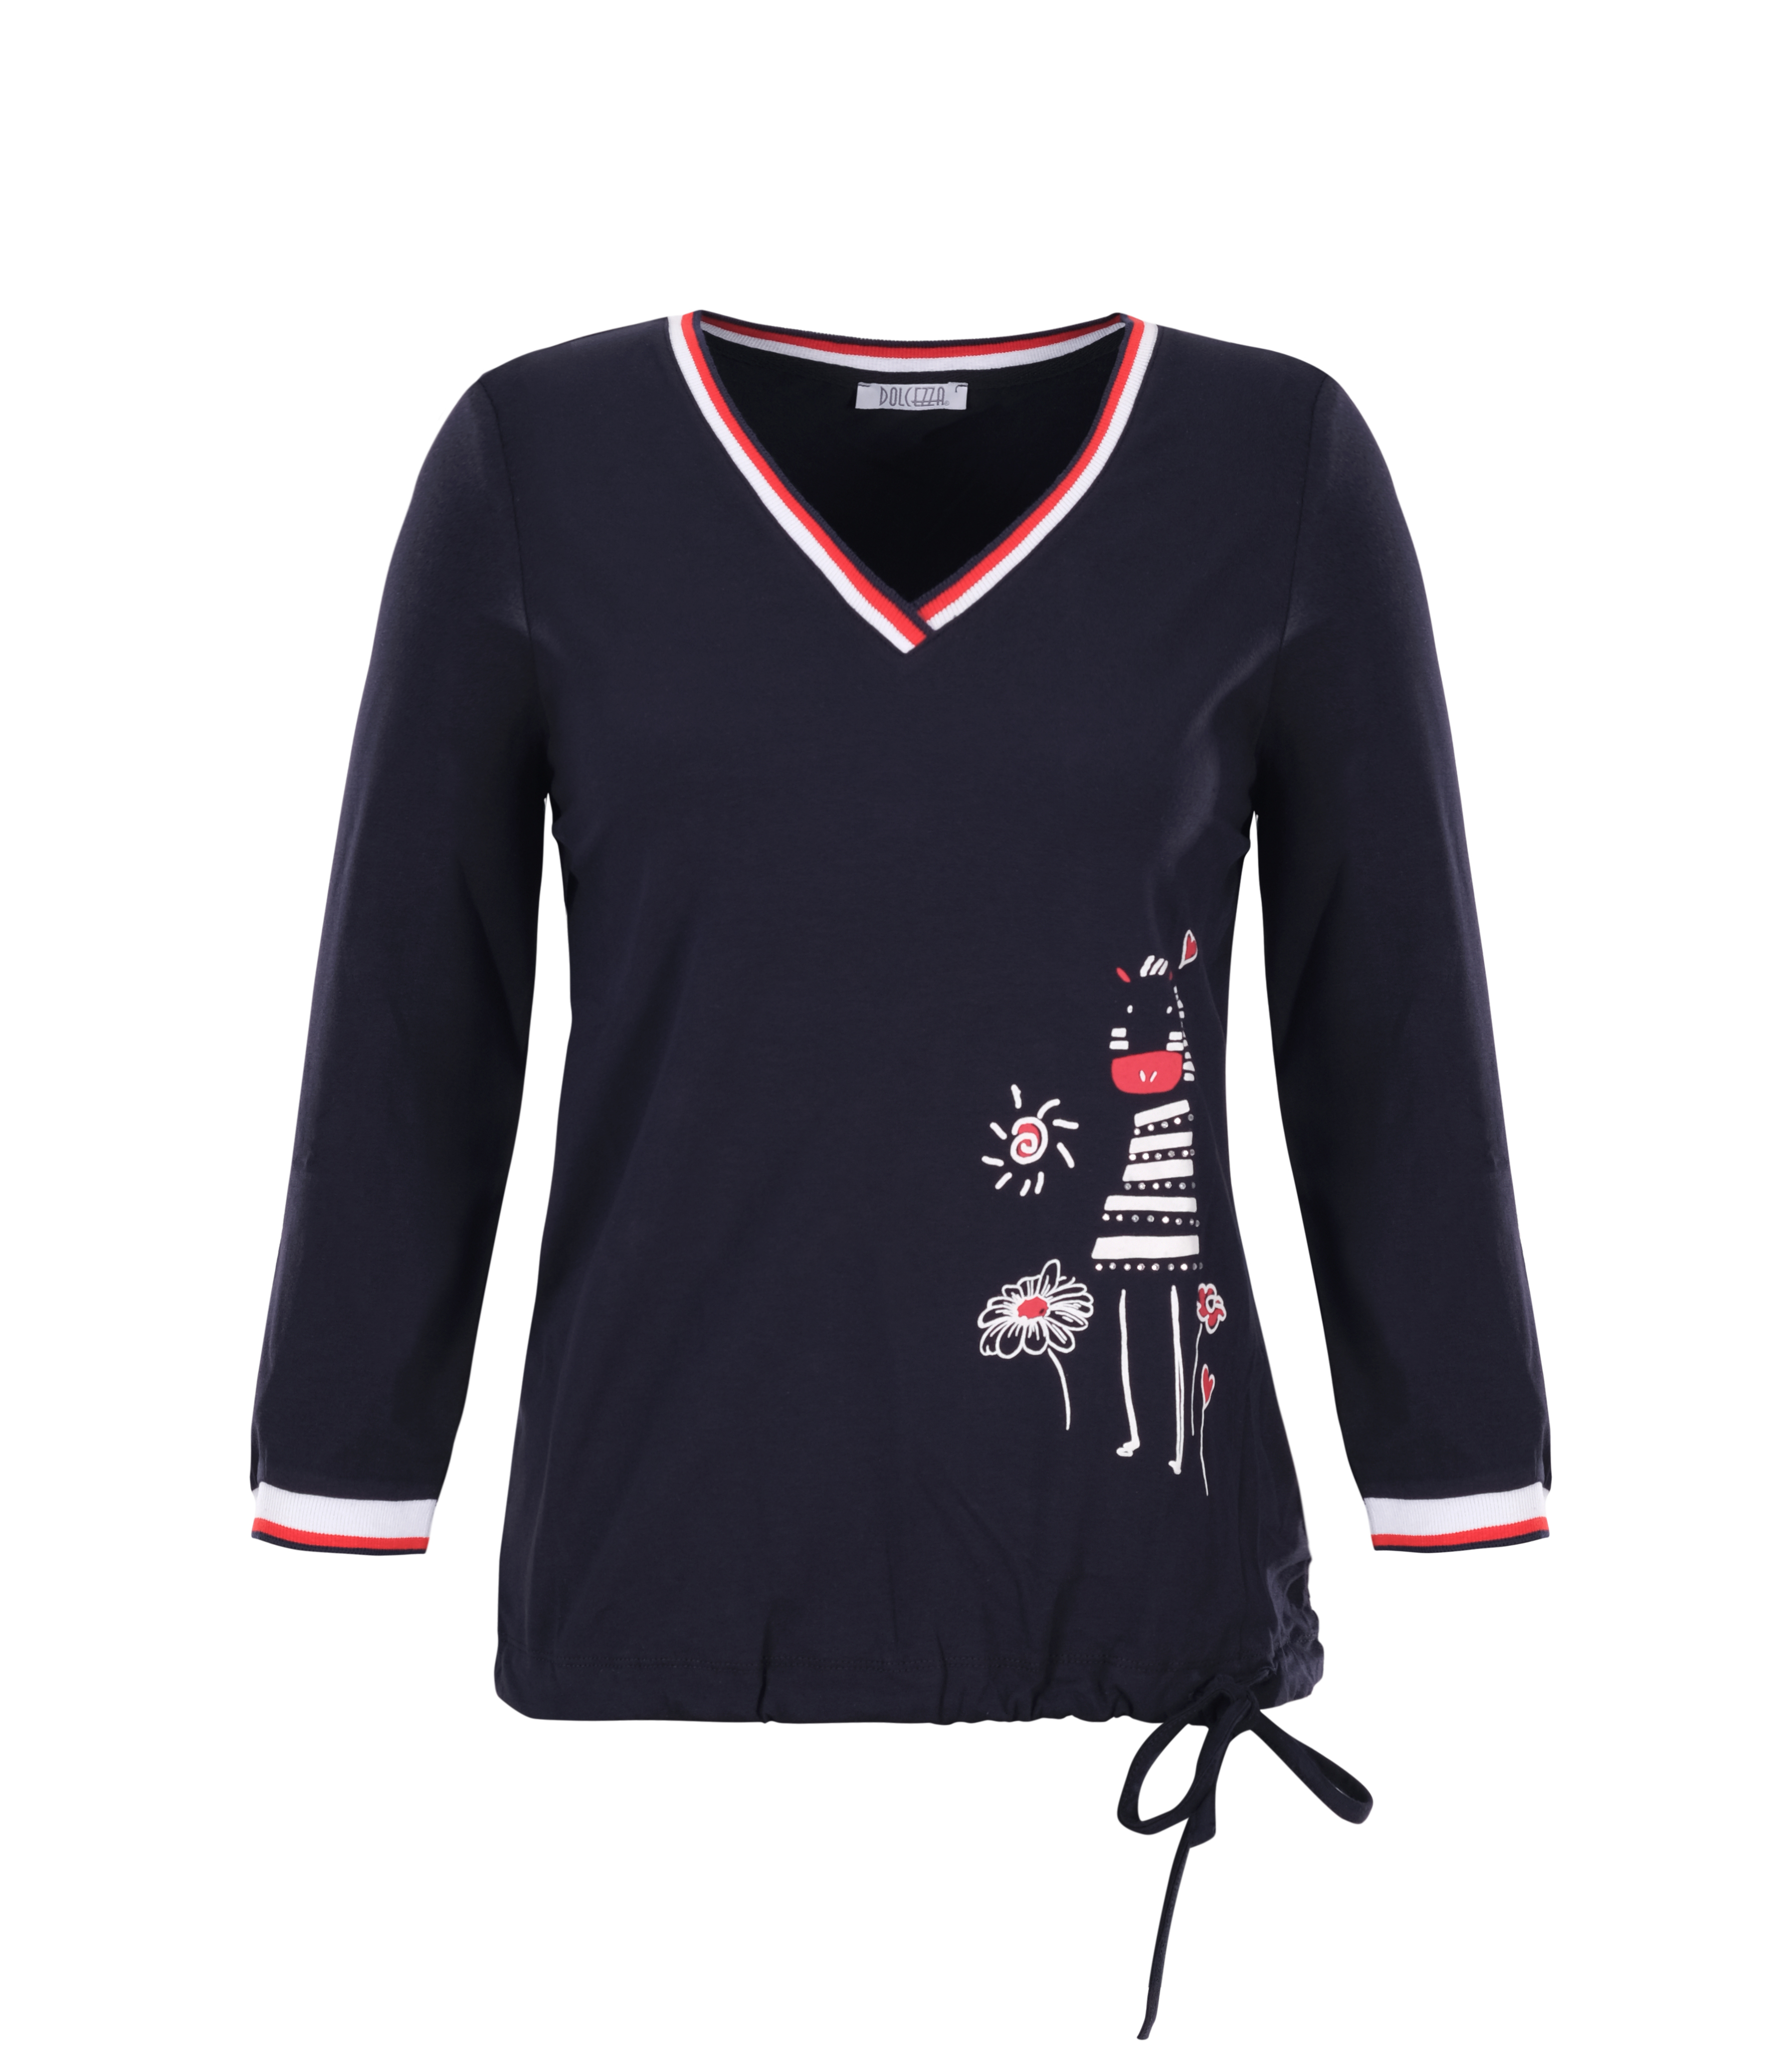 Dolcezza: Humour Me In Navy Tied Hem T-Shirt (2 Left!) Dolcezza_21101